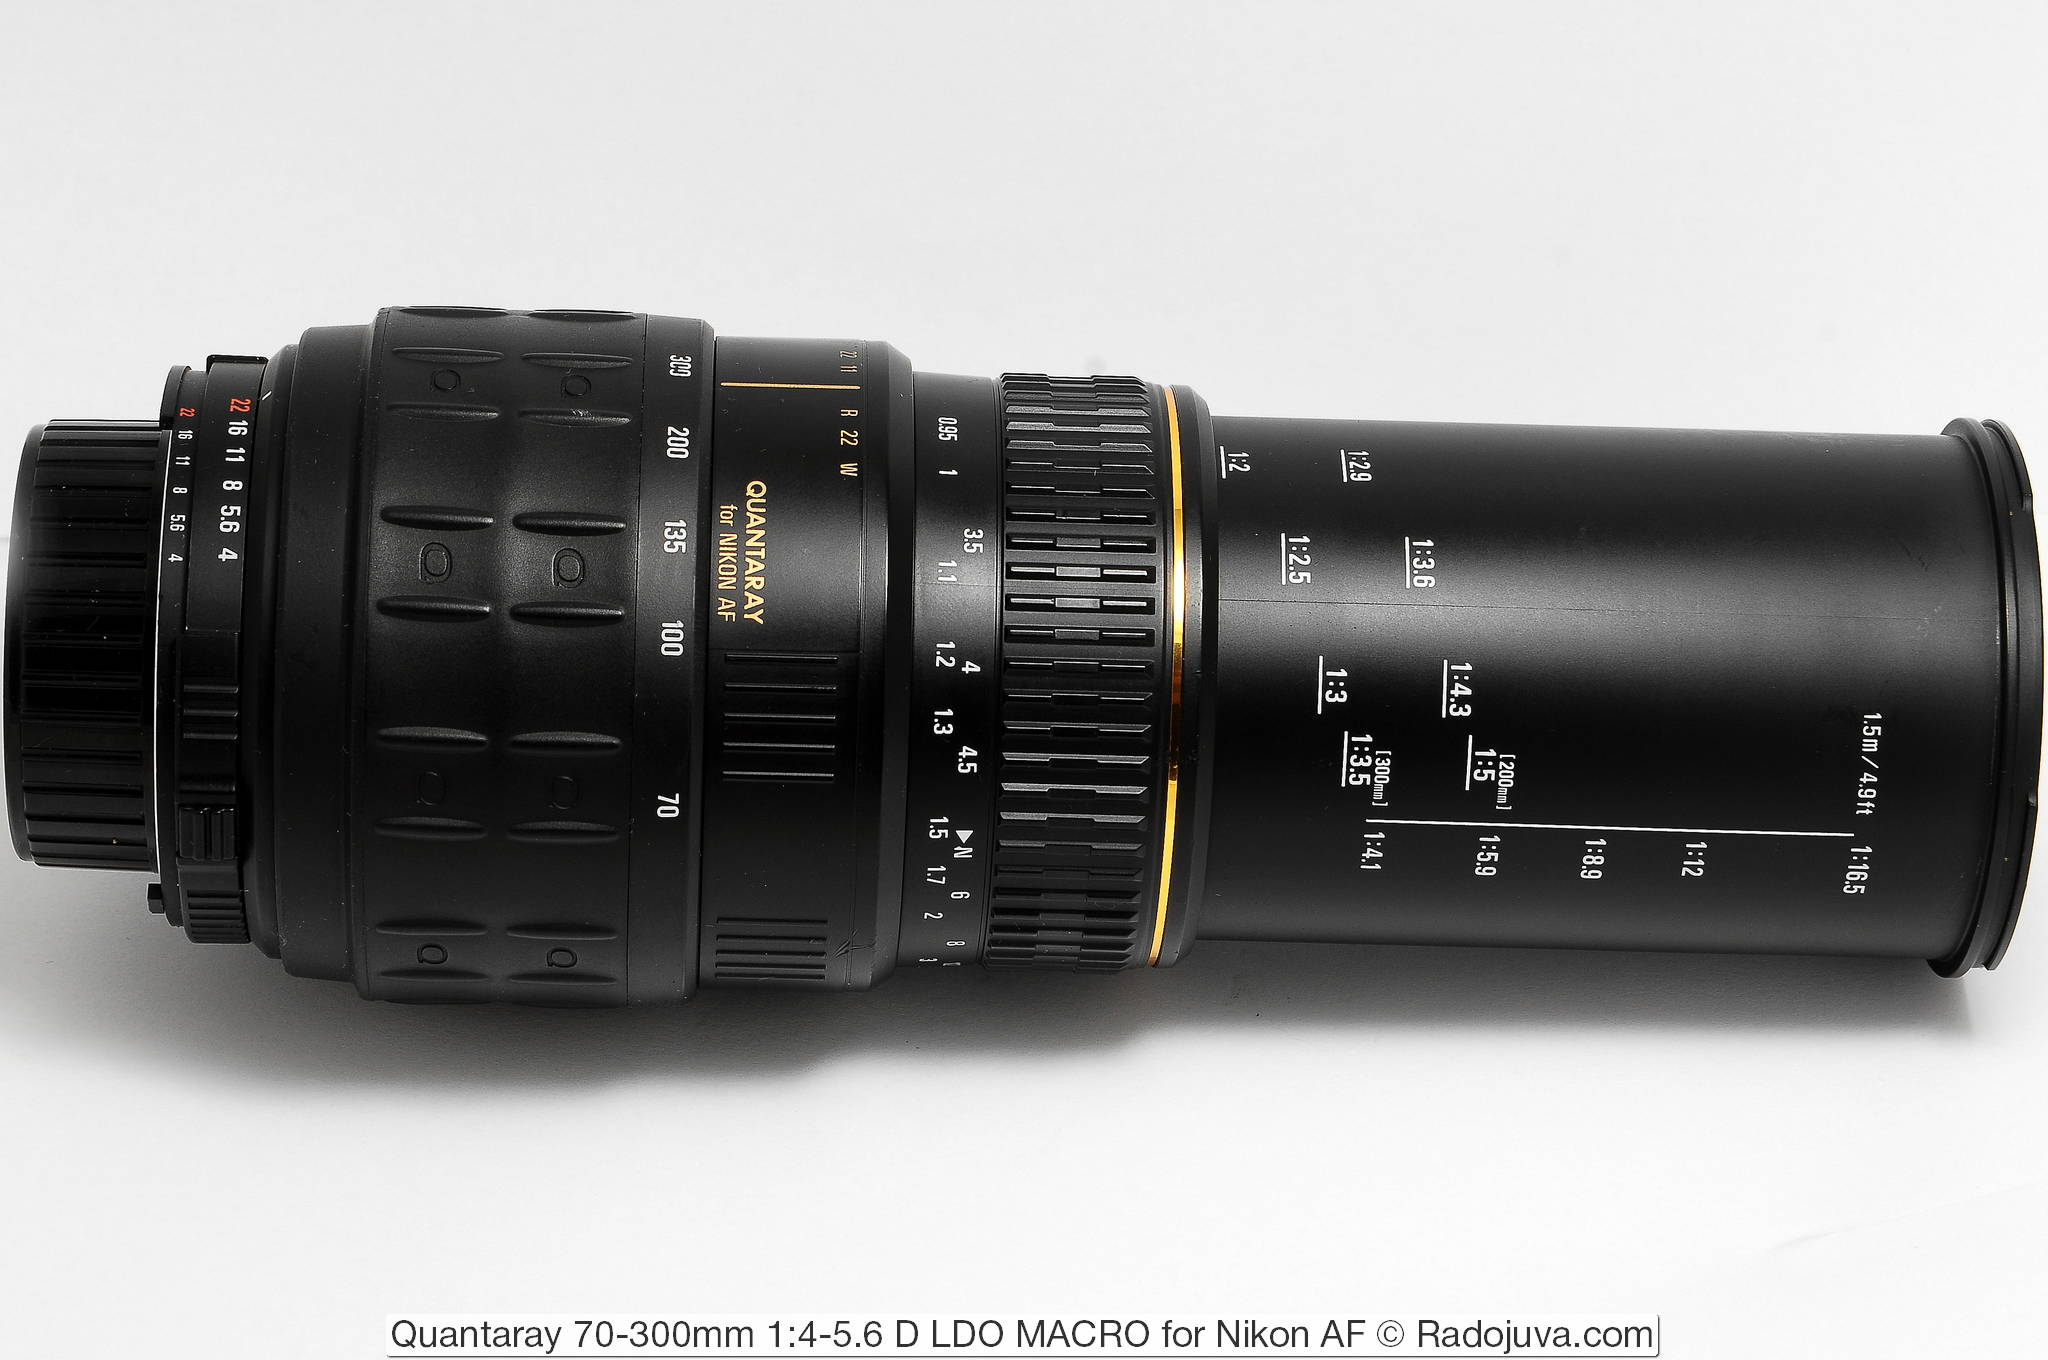 Quantaray 70-300mm 1:4-5.6 D LDO MACRO for Nikon AF, MACRO (200-300)